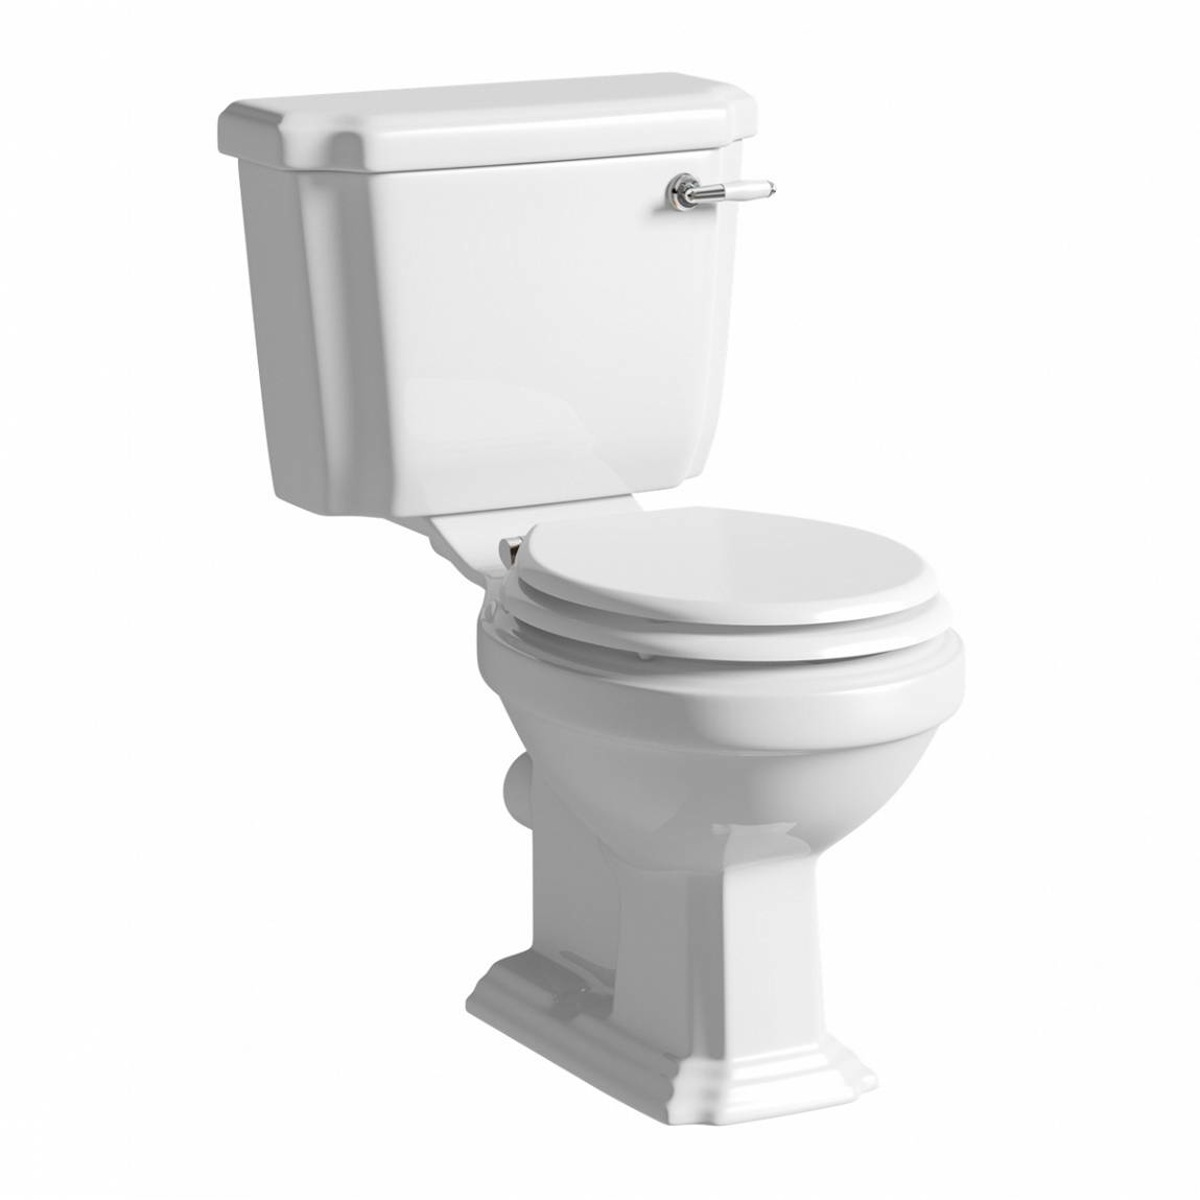 K-Vit Astley C/C WC Pan & Cistern (Seat Not Included)